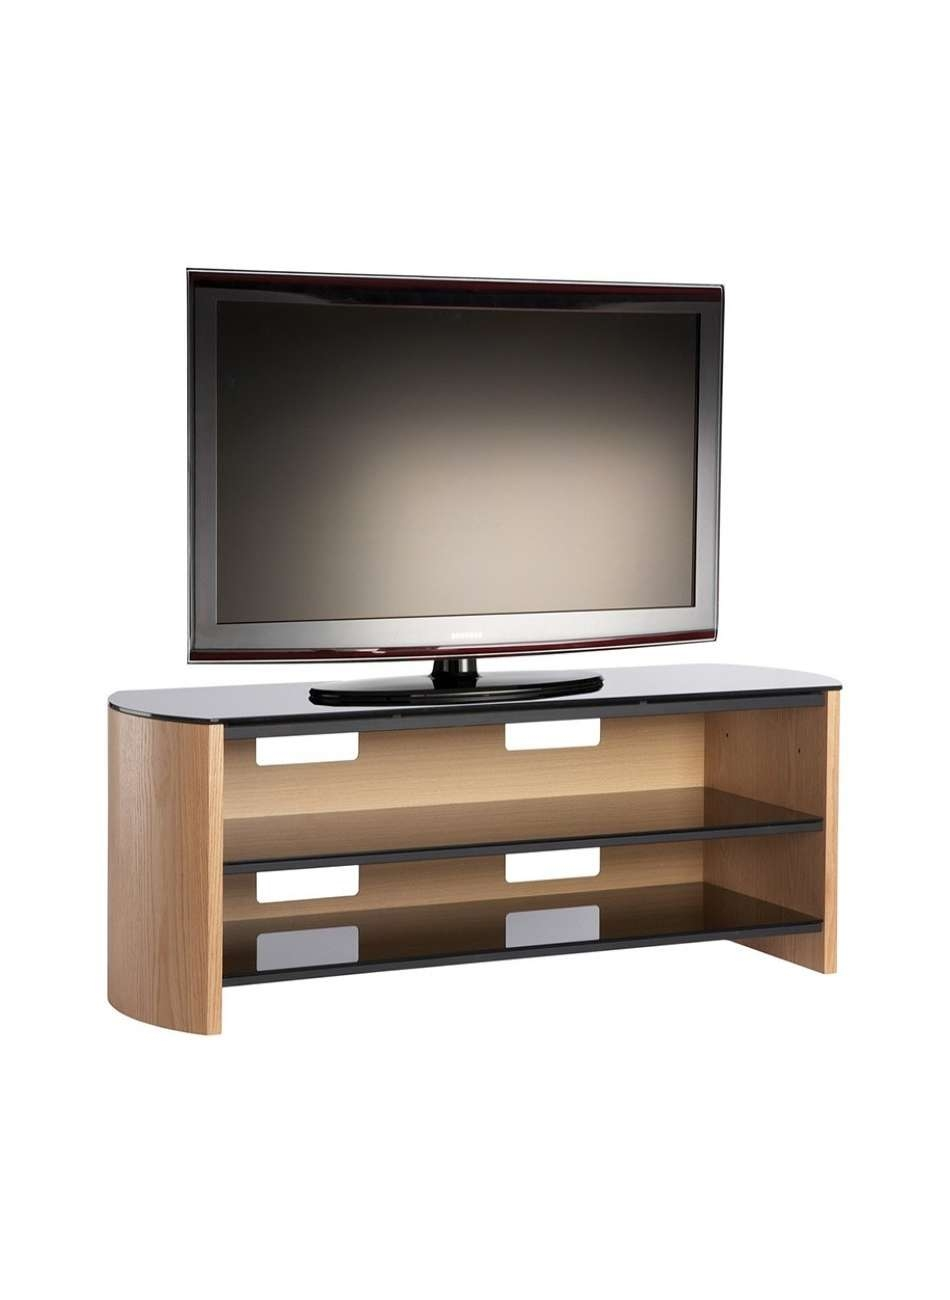 Alphason Fw1350 Lo/b Finewoods Tv Stand | 121 Tv Mounts Within Alphason Tv Cabinets (View 14 of 20)